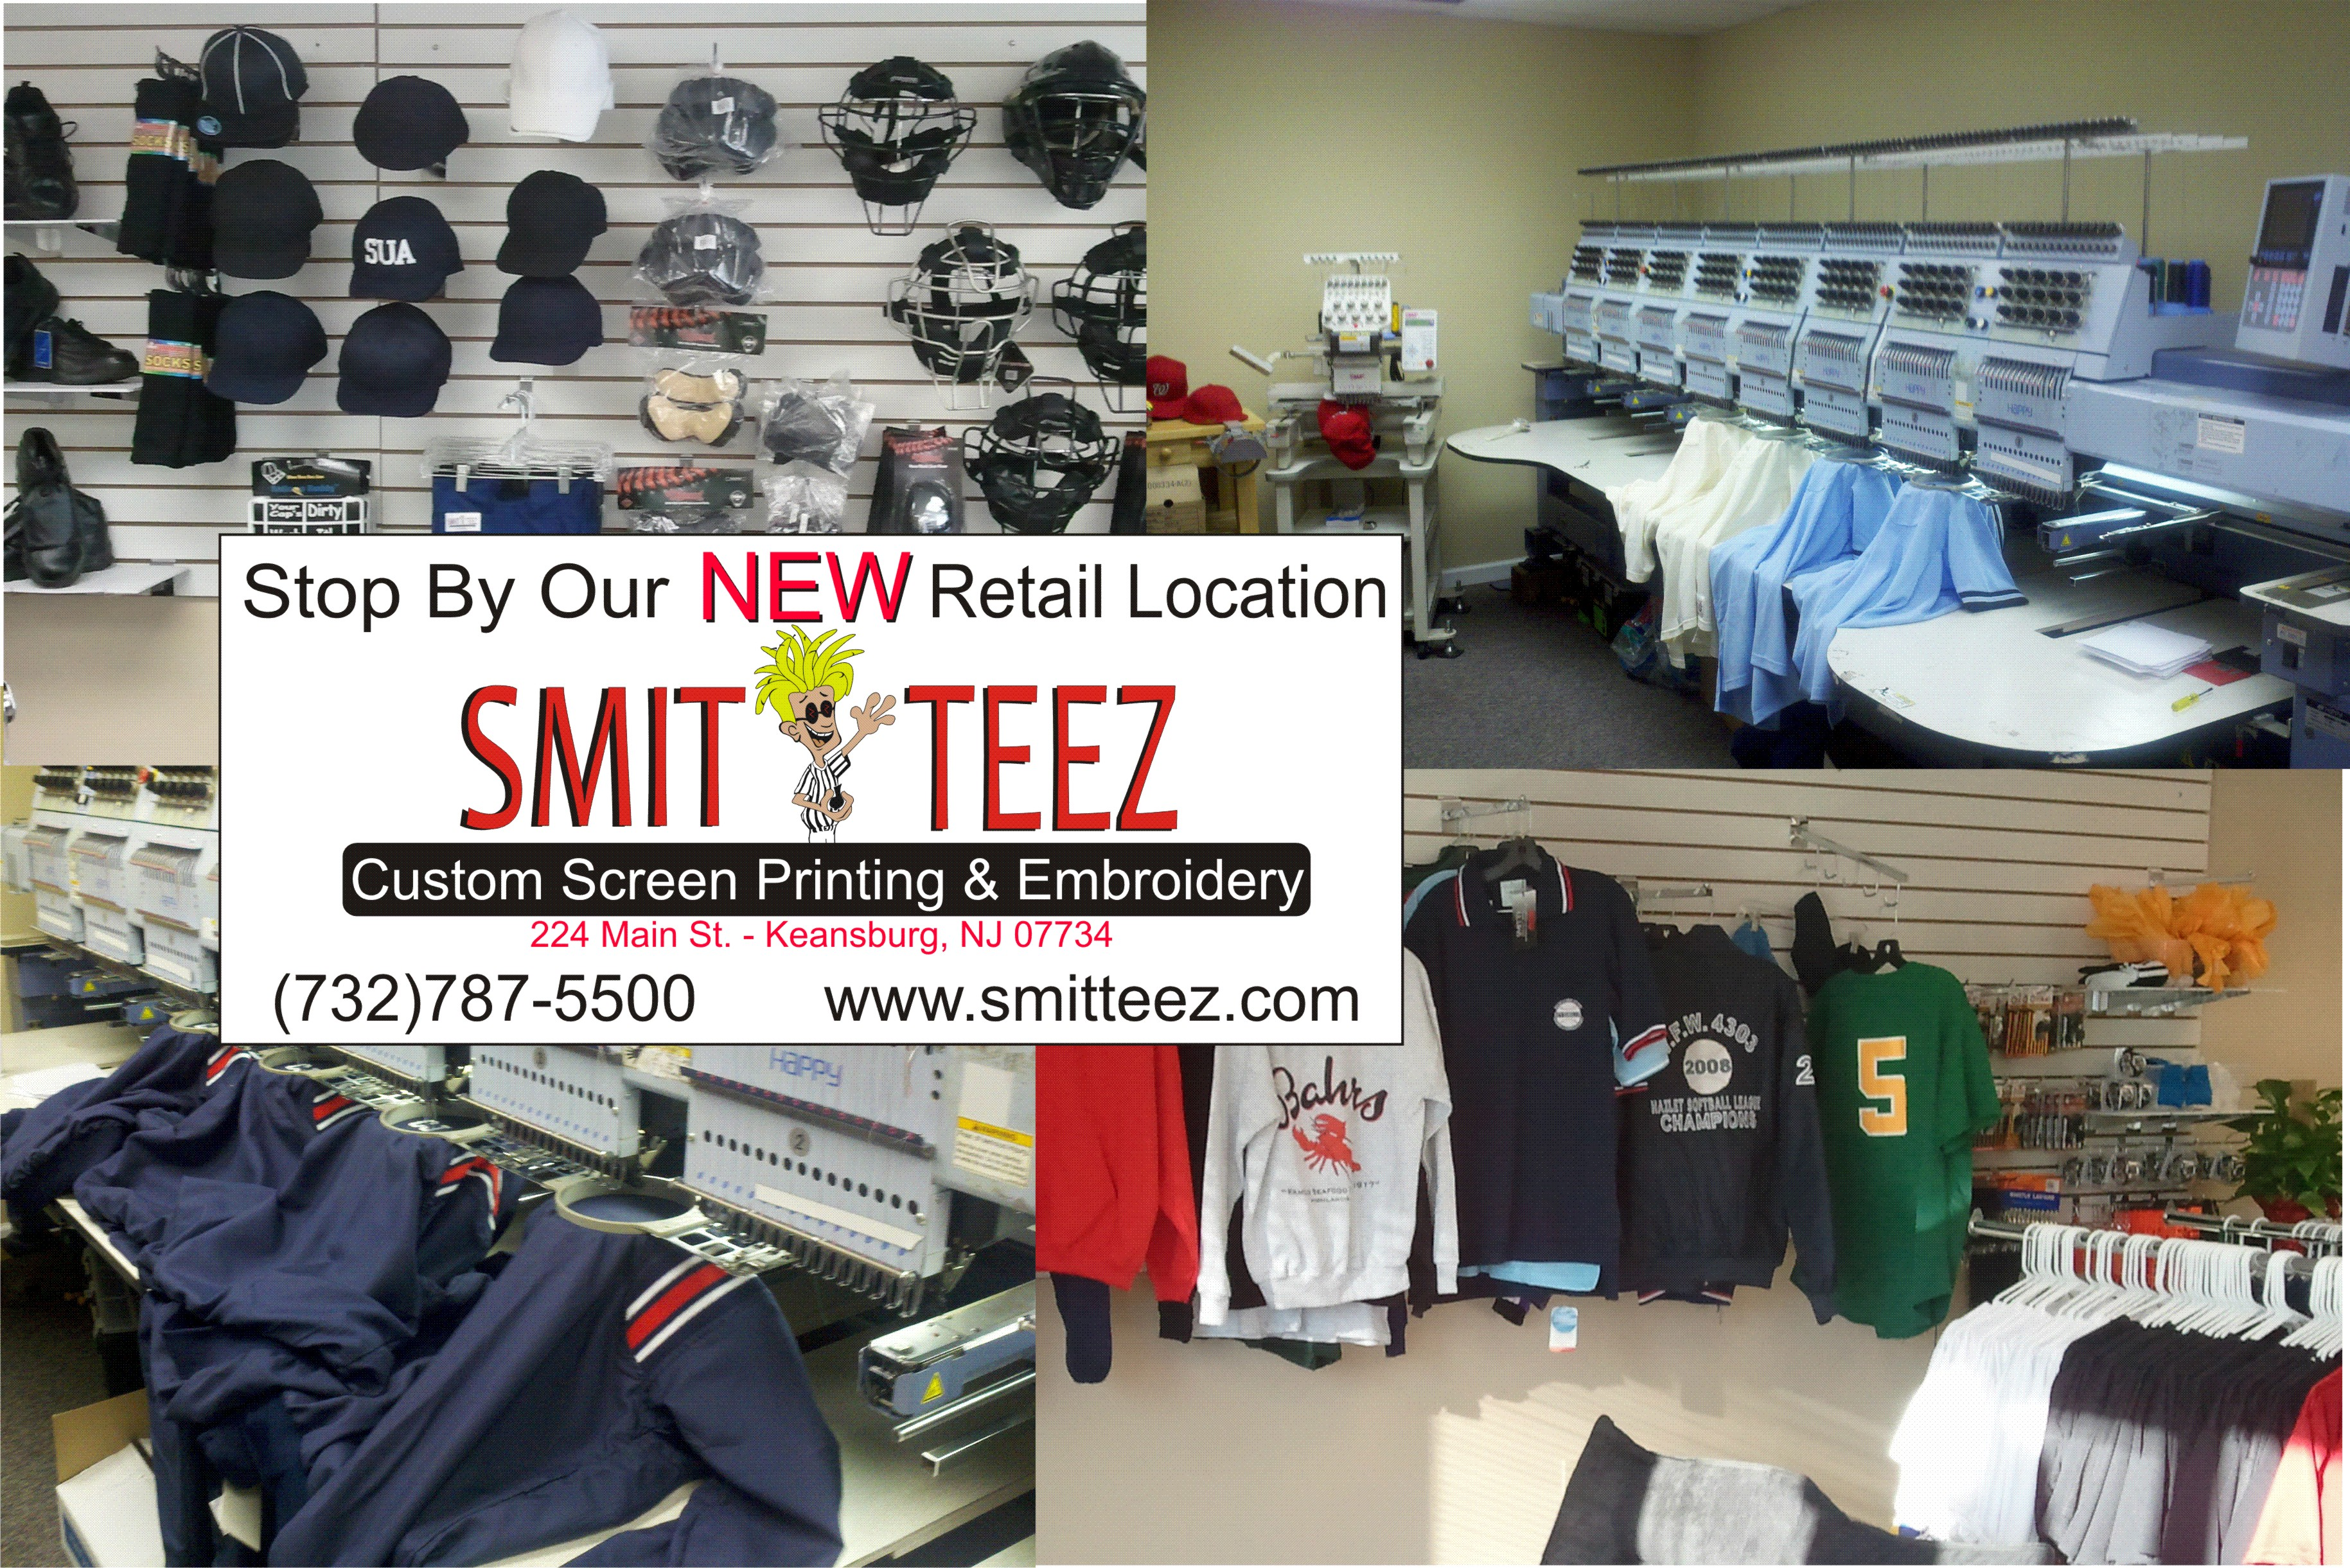 Smitteez Sportswear - Custom Screen Printing and Embroidery